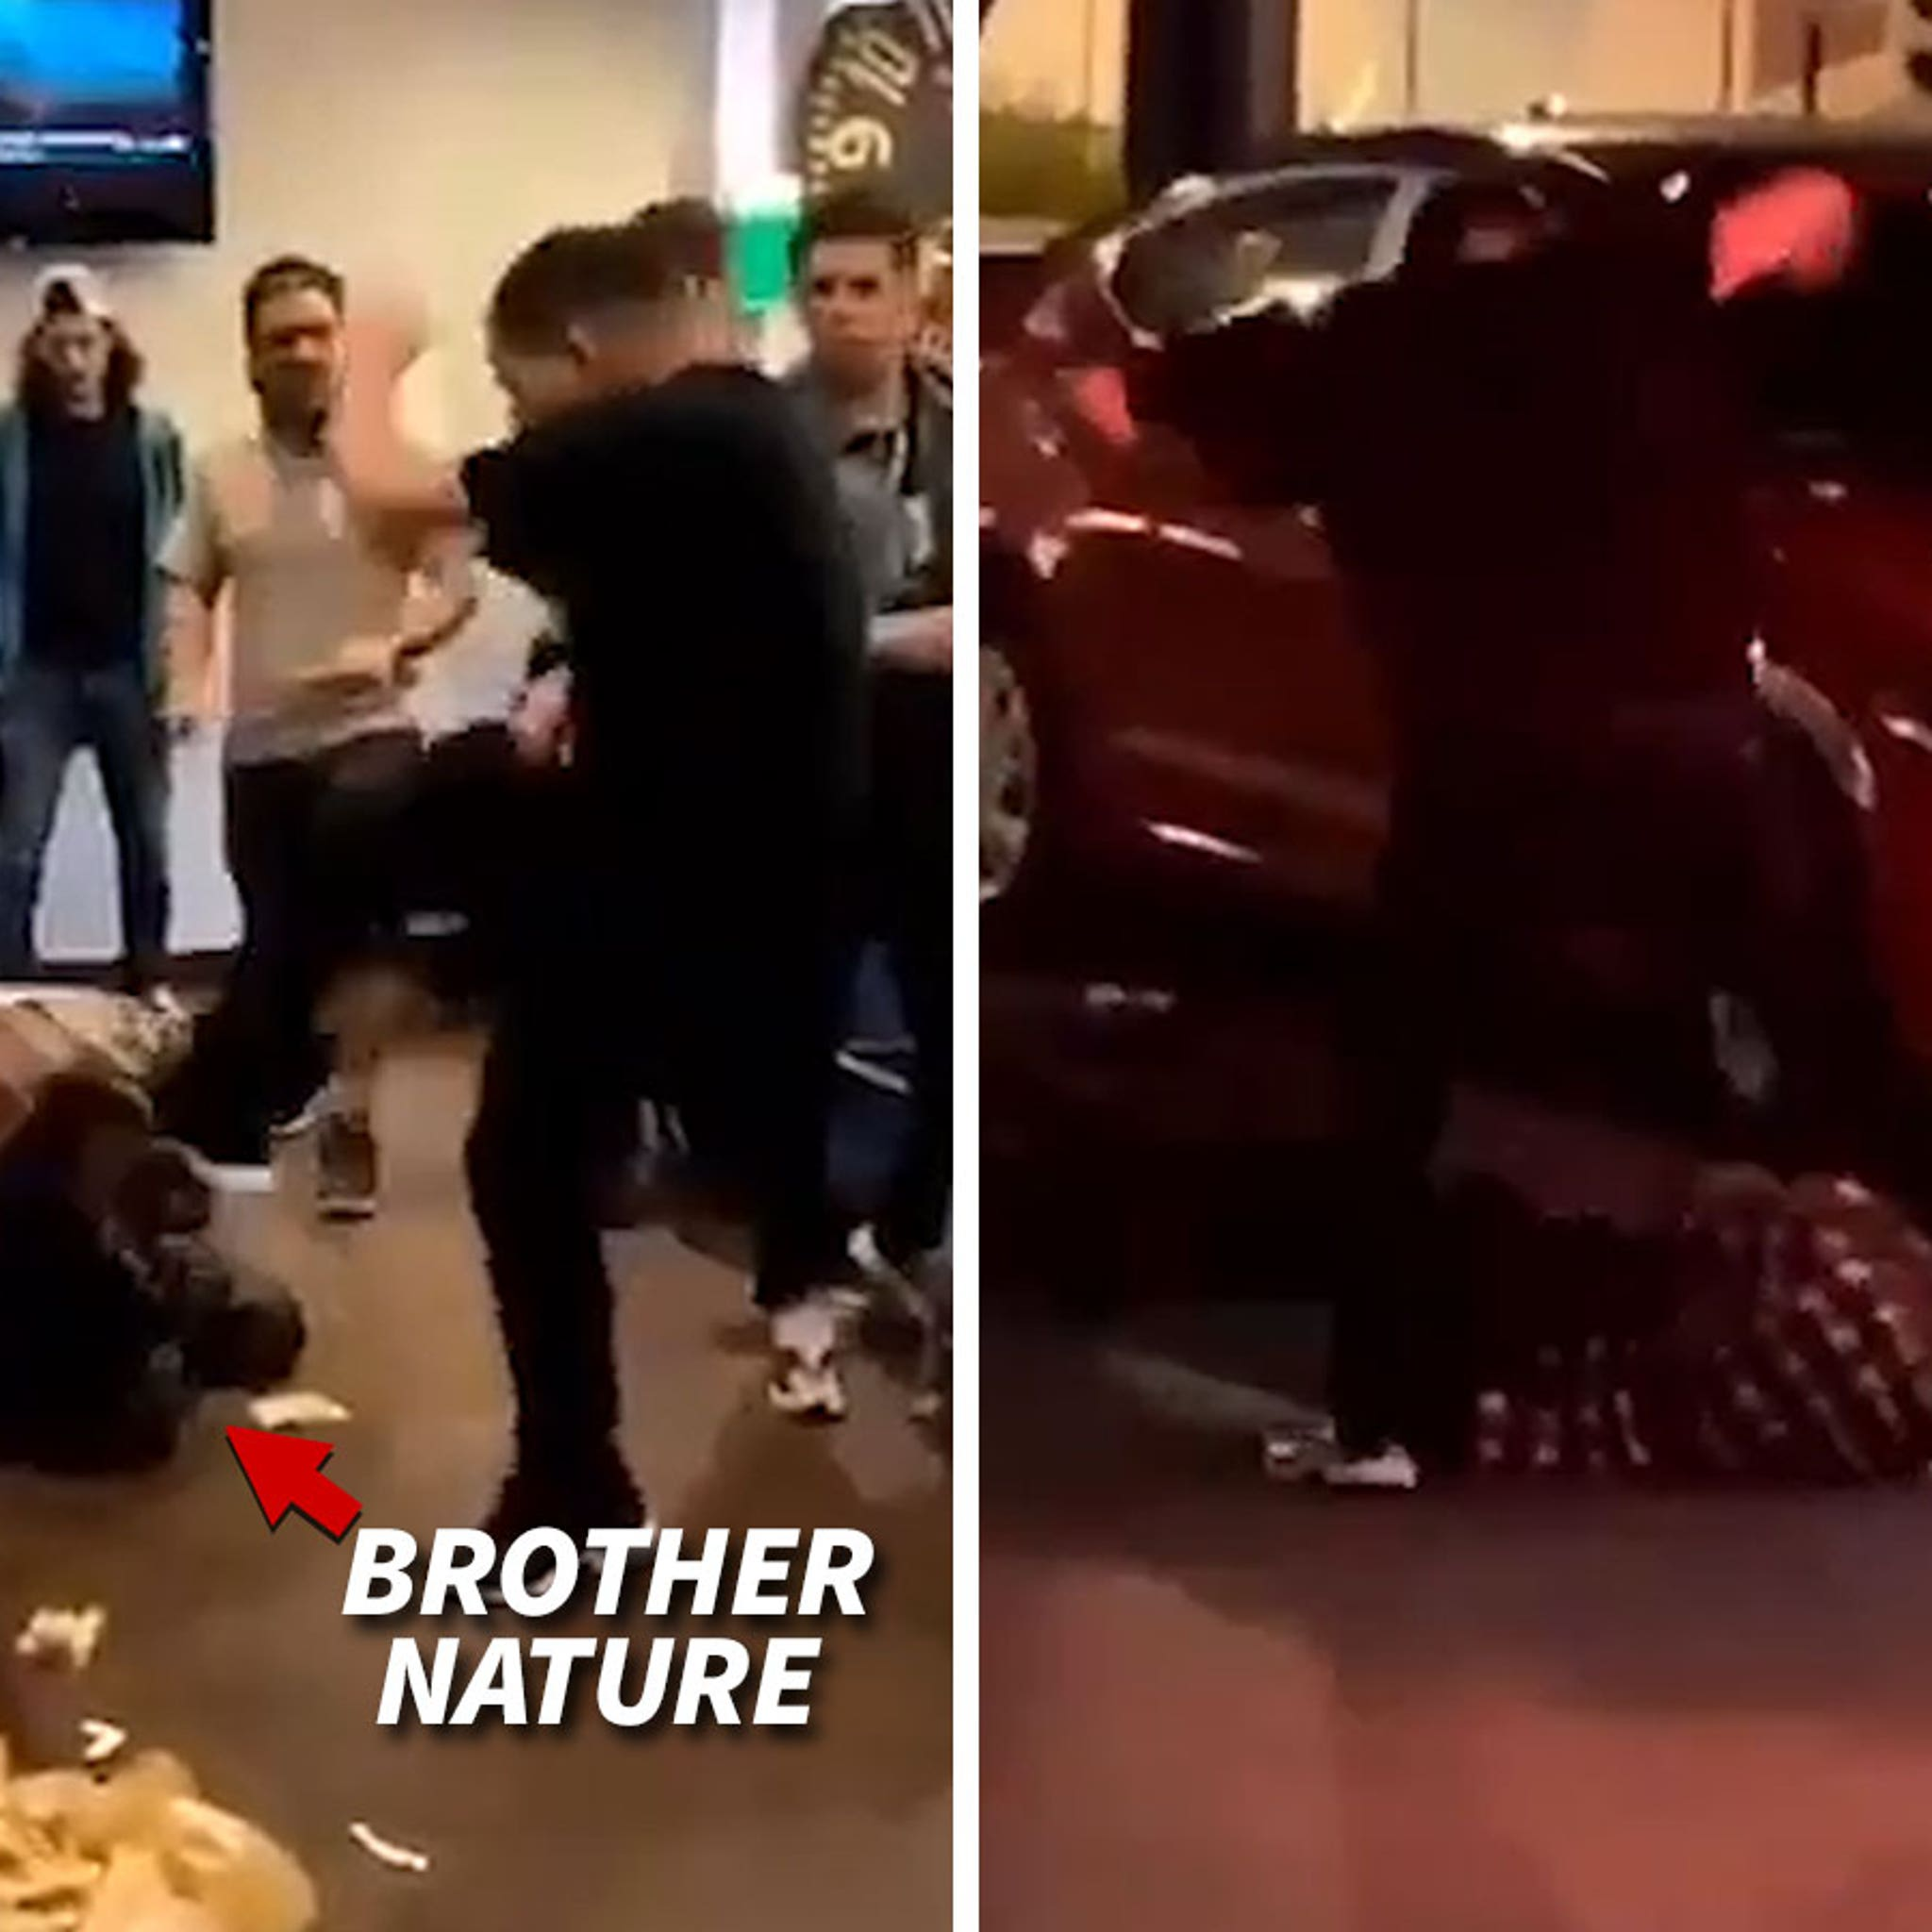 IG Influencer Brother Nature Attacked on Camera in Miami Restaurant